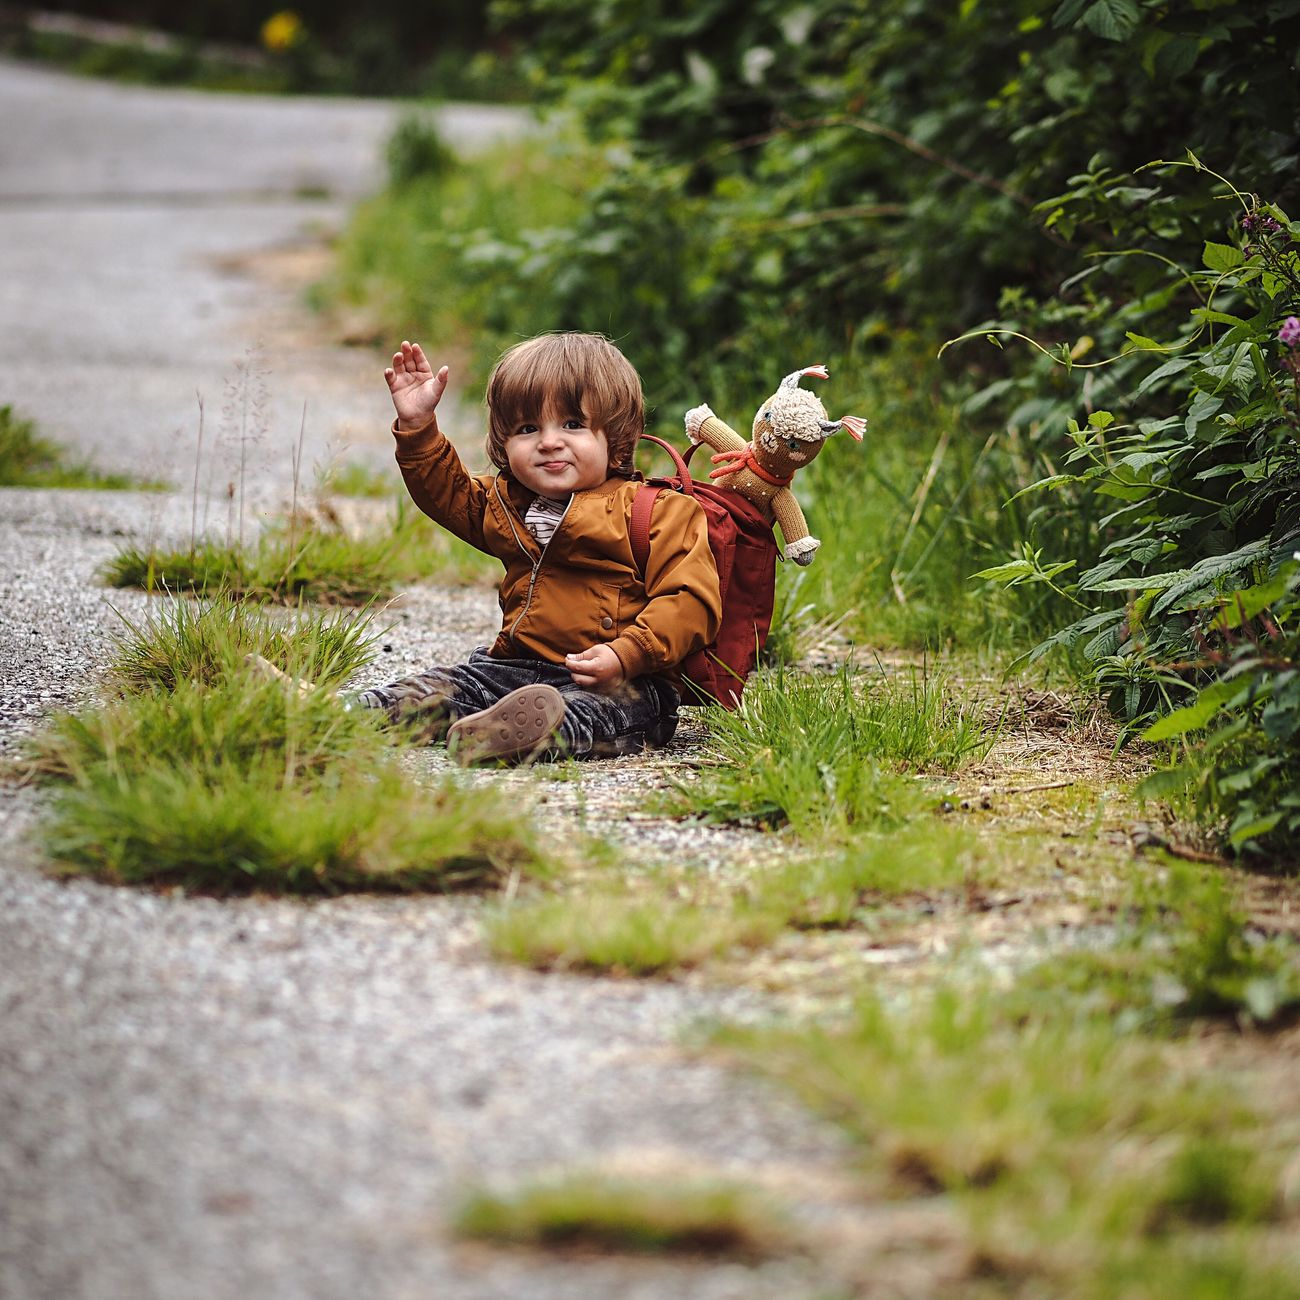 Kindergarten next Toddler  Children Kindergarten Outdoors Portrait Trip Nature Children Photography Child On The Road Hiking Olympus Olympus 75 1.8 Omd Mft